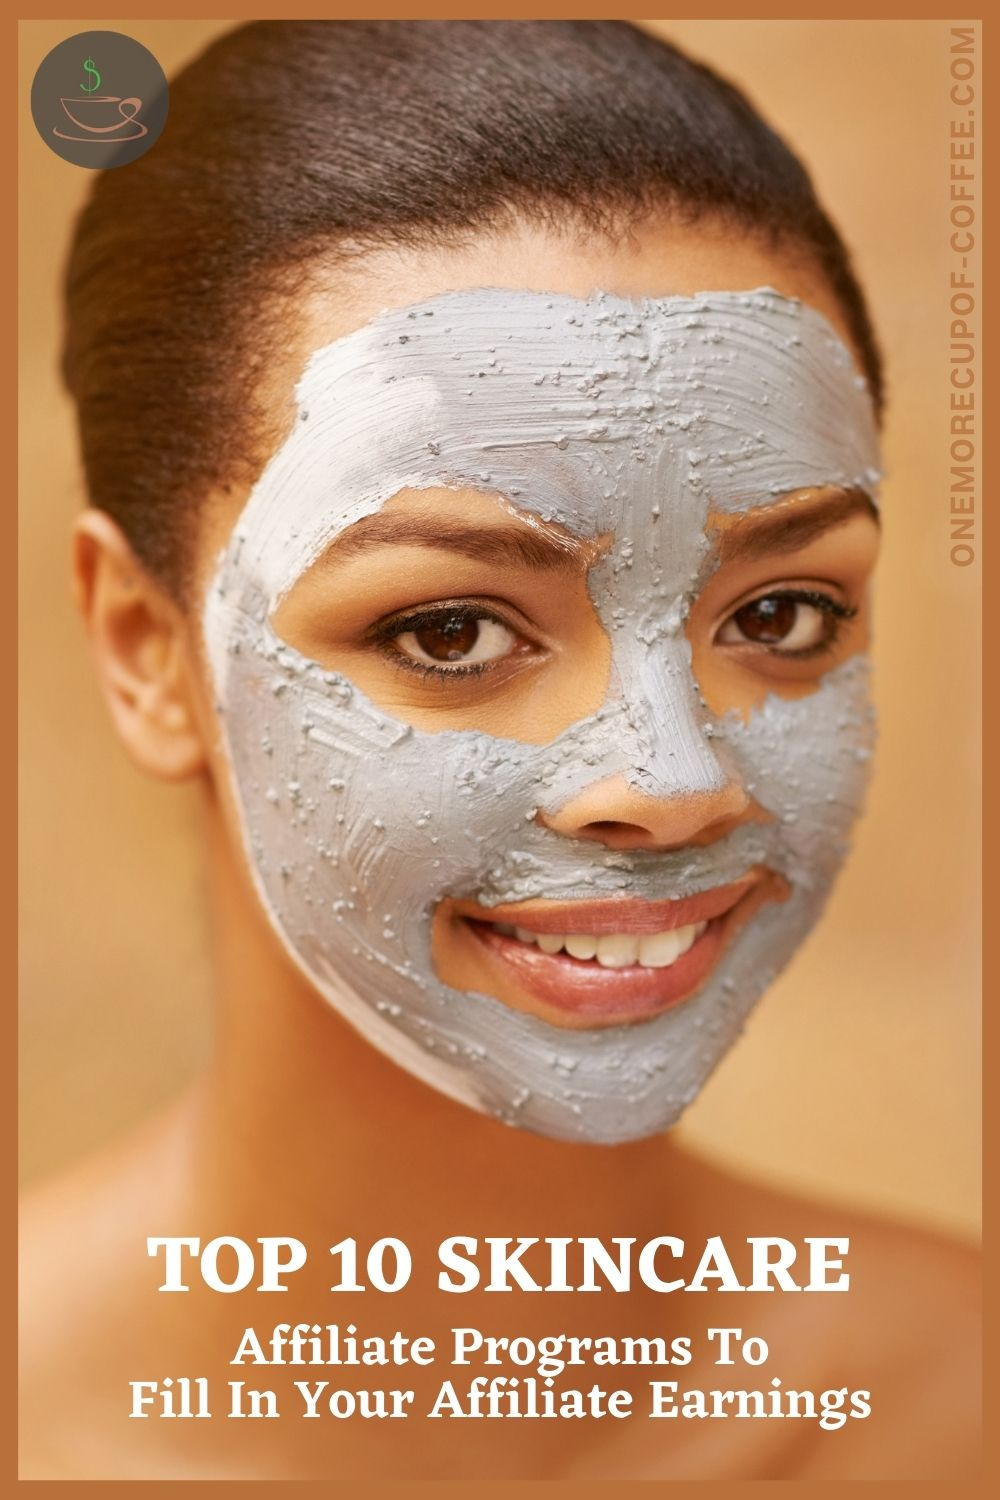 """closeup image of a smiling black woman's face with clay mask, with text overlay """"Top 10 Skincare Affiliate Programs To Fill In Your Affiliate Earnings"""""""